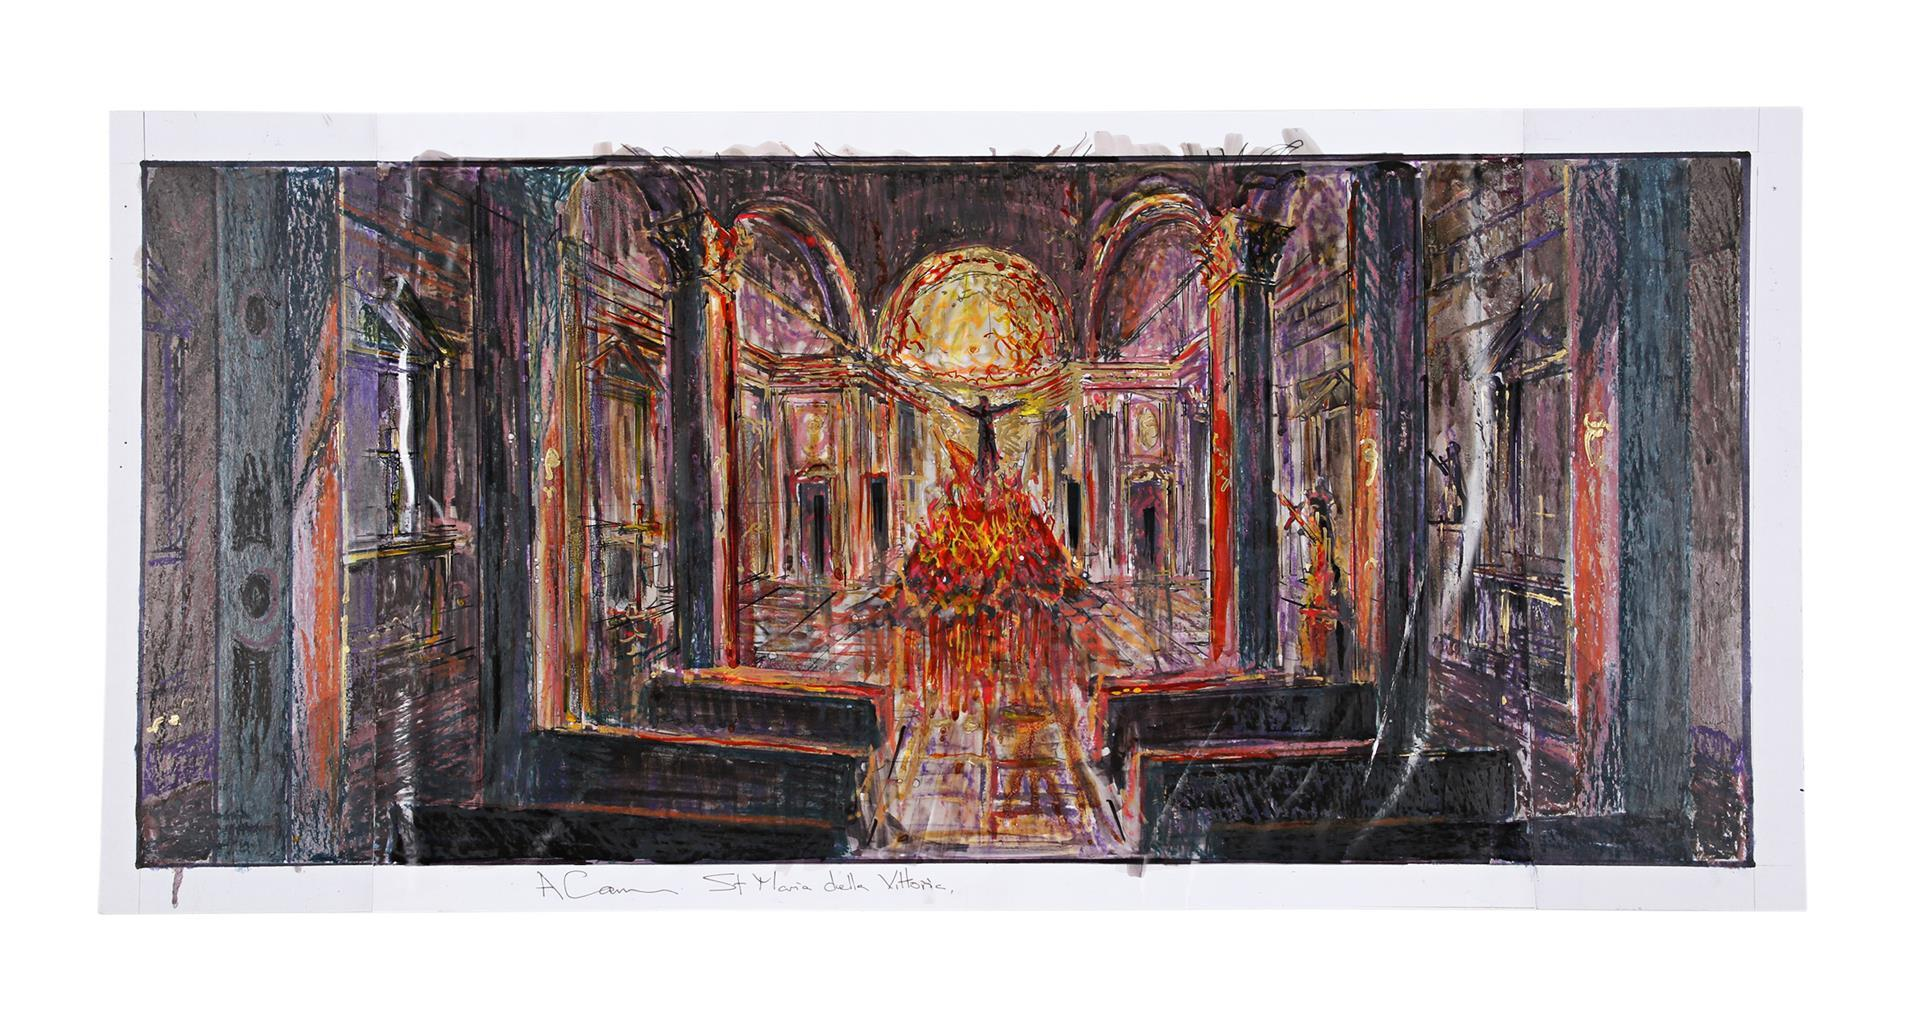 ANGELS & DEMONS (2009) - Collection of Allan Cameron Hand-painted and Printed Rome and Vatican City - Image 3 of 16